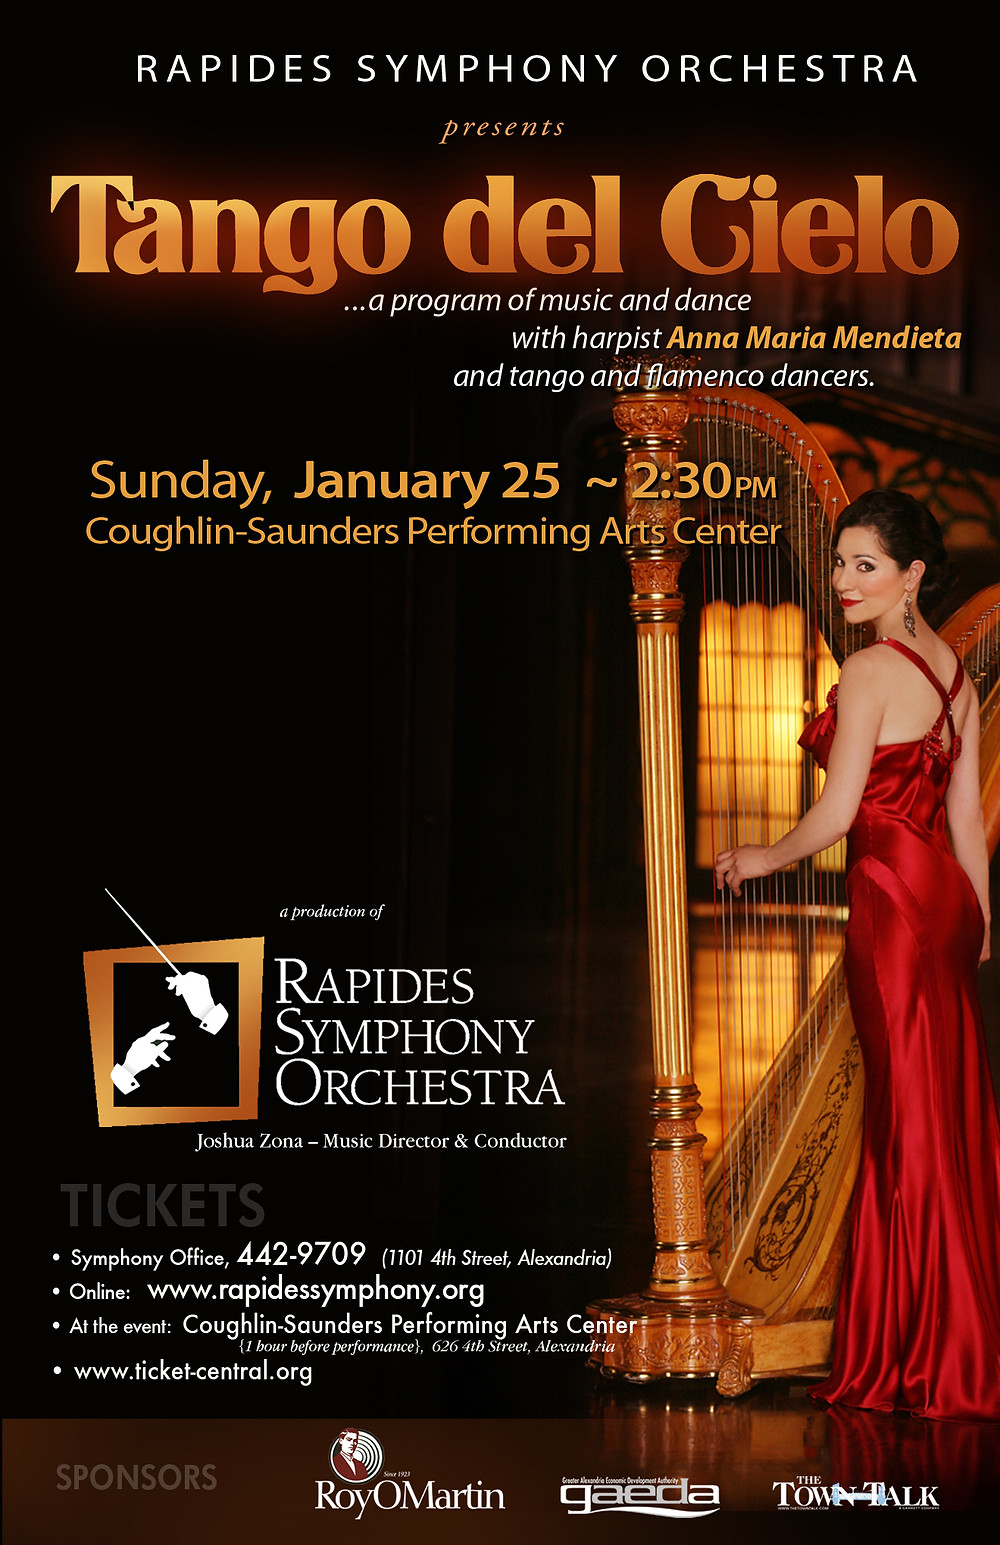 © Rapides Symphony Orchestra 2015